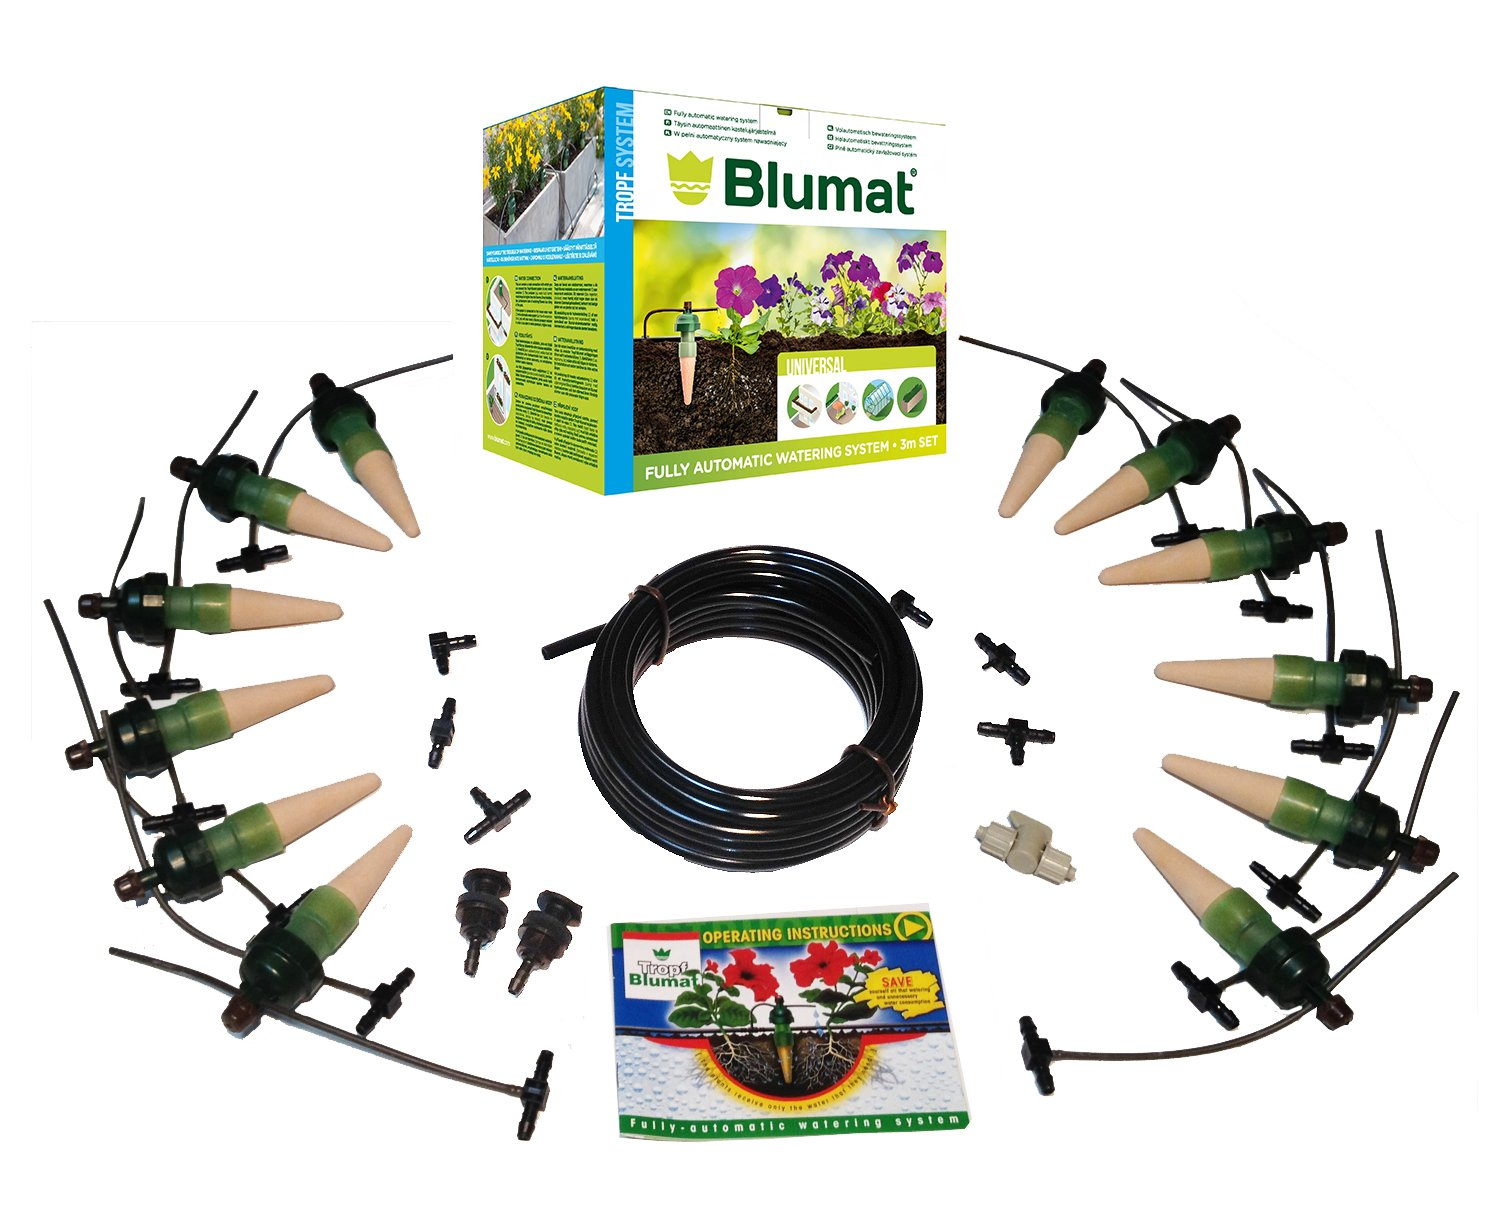 Blumat - 12 Plant Watering System - Deluxe Full Loop Kit - Made in Austria - Great for Automatic Vacation Watering